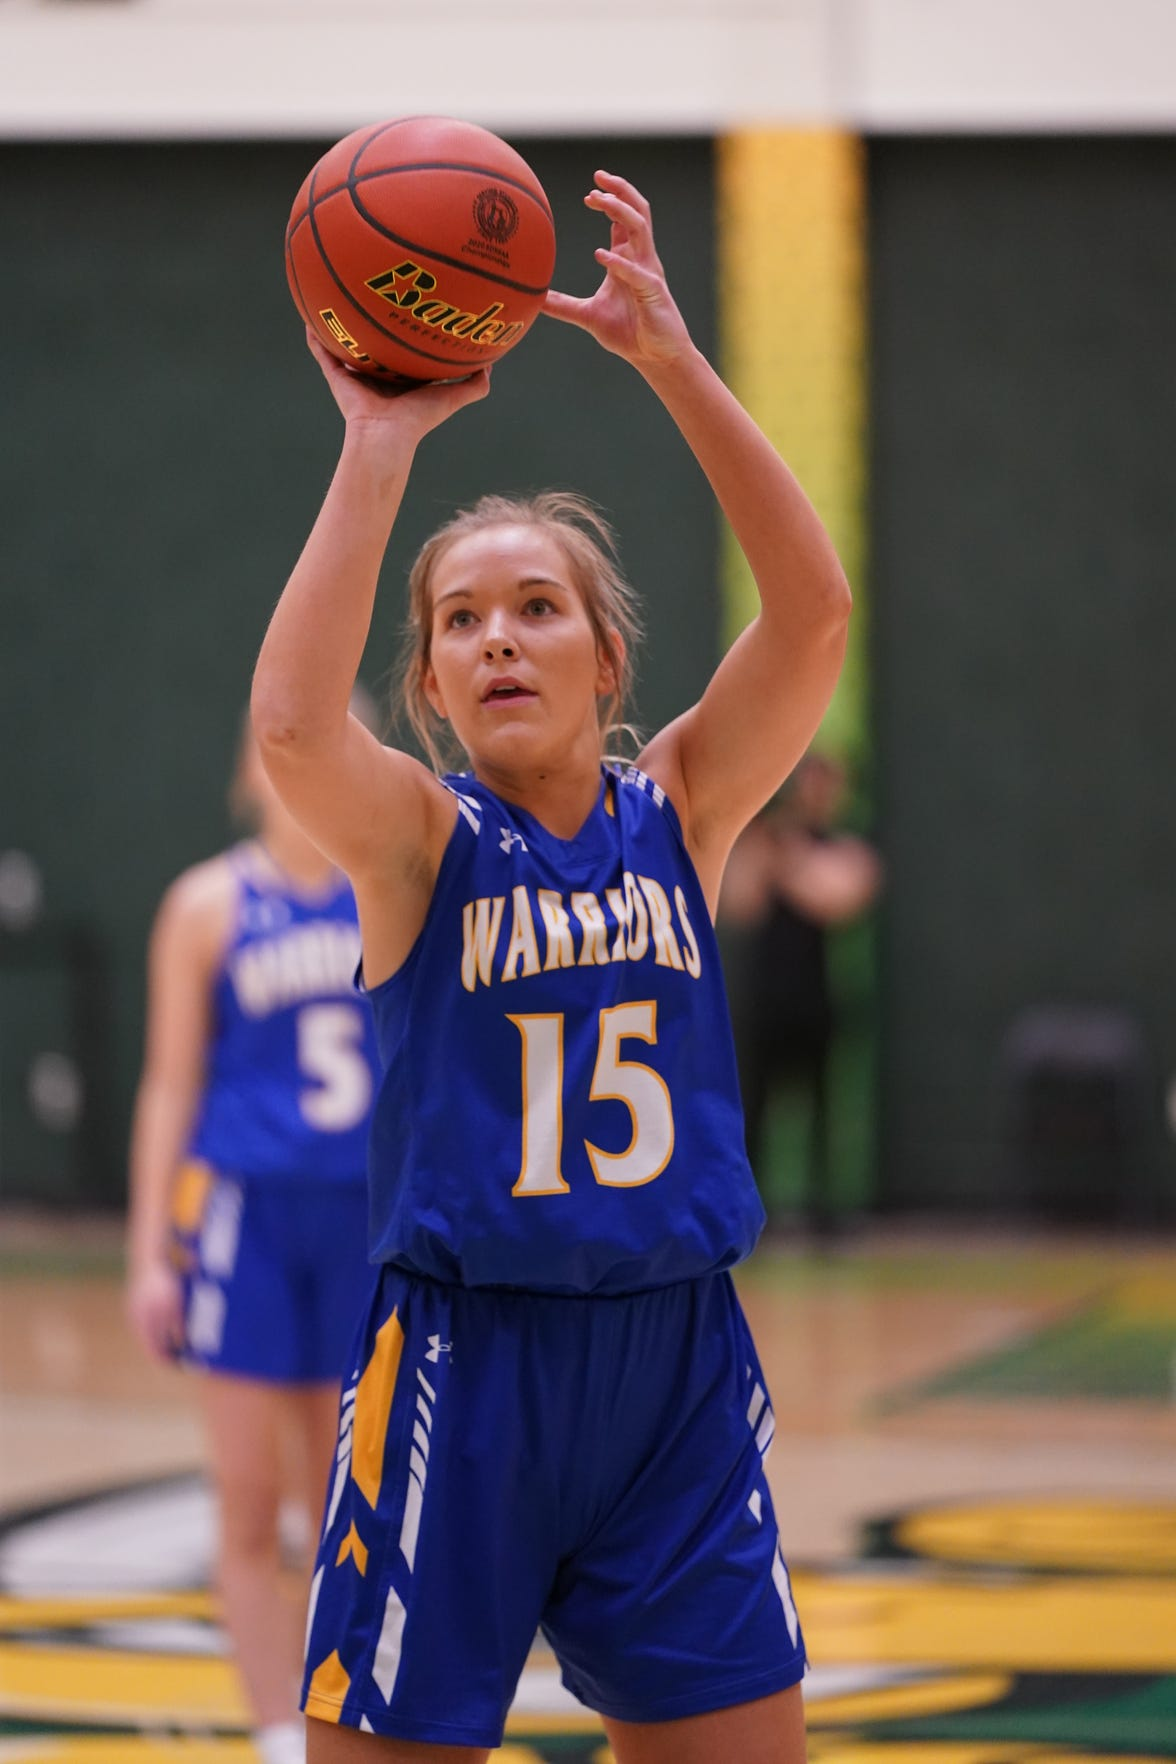 Castlewood junior Alayna Benike shoots a free throw during the Class B quarterfinal against Ethan.